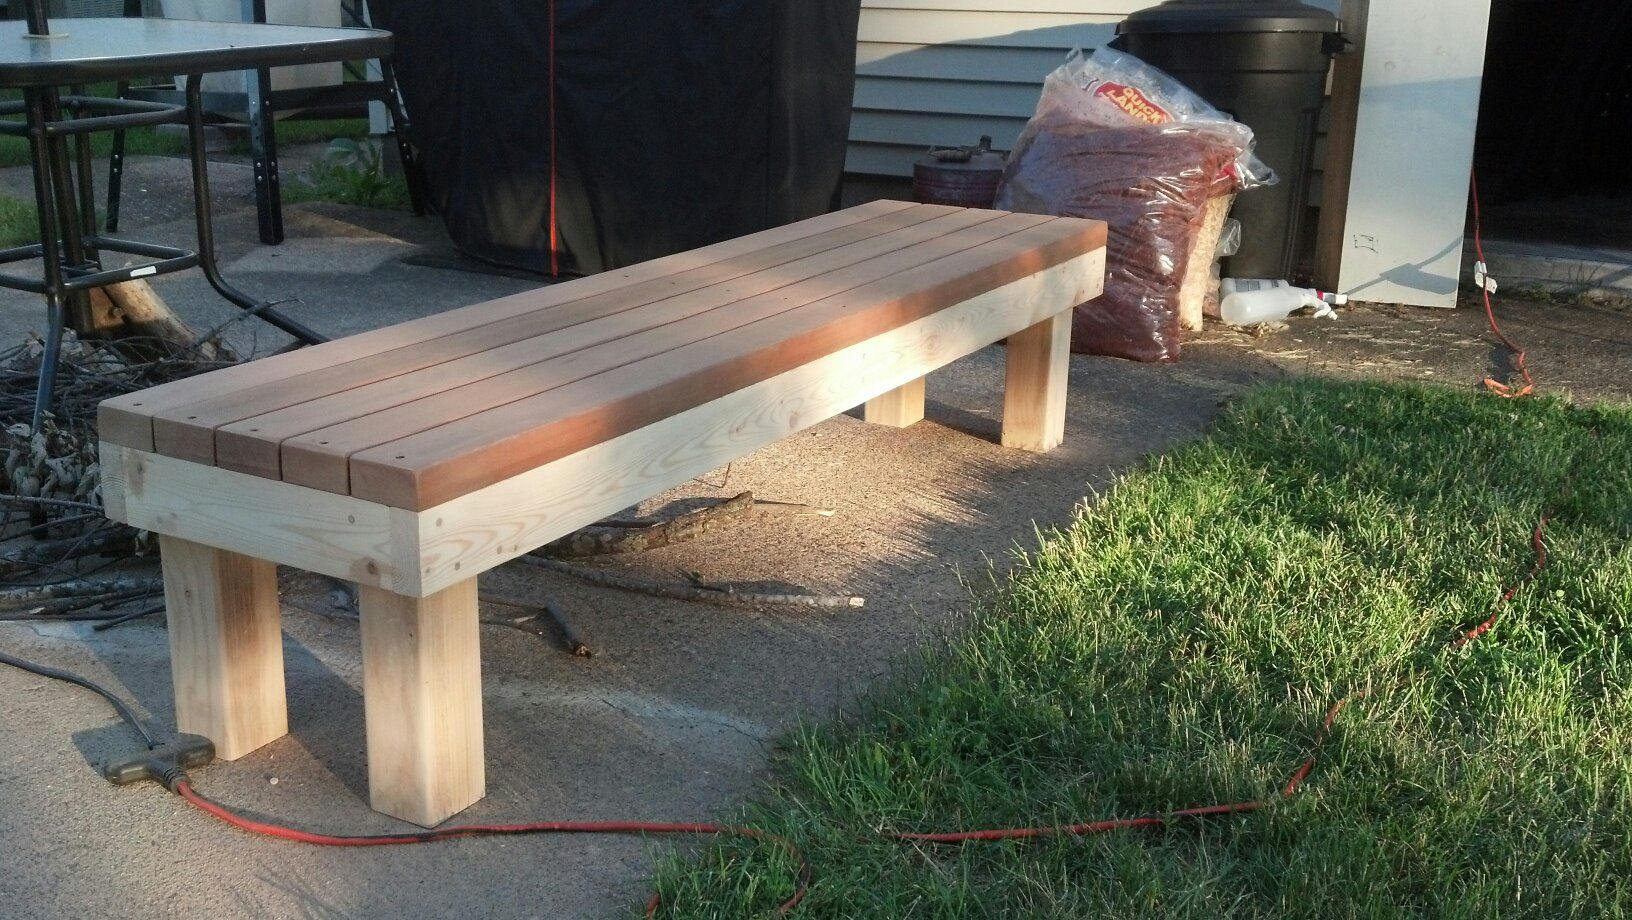 Simple 2x4 Bench | Seating | Pinterest | 2x4 bench, Woodworking and Woods